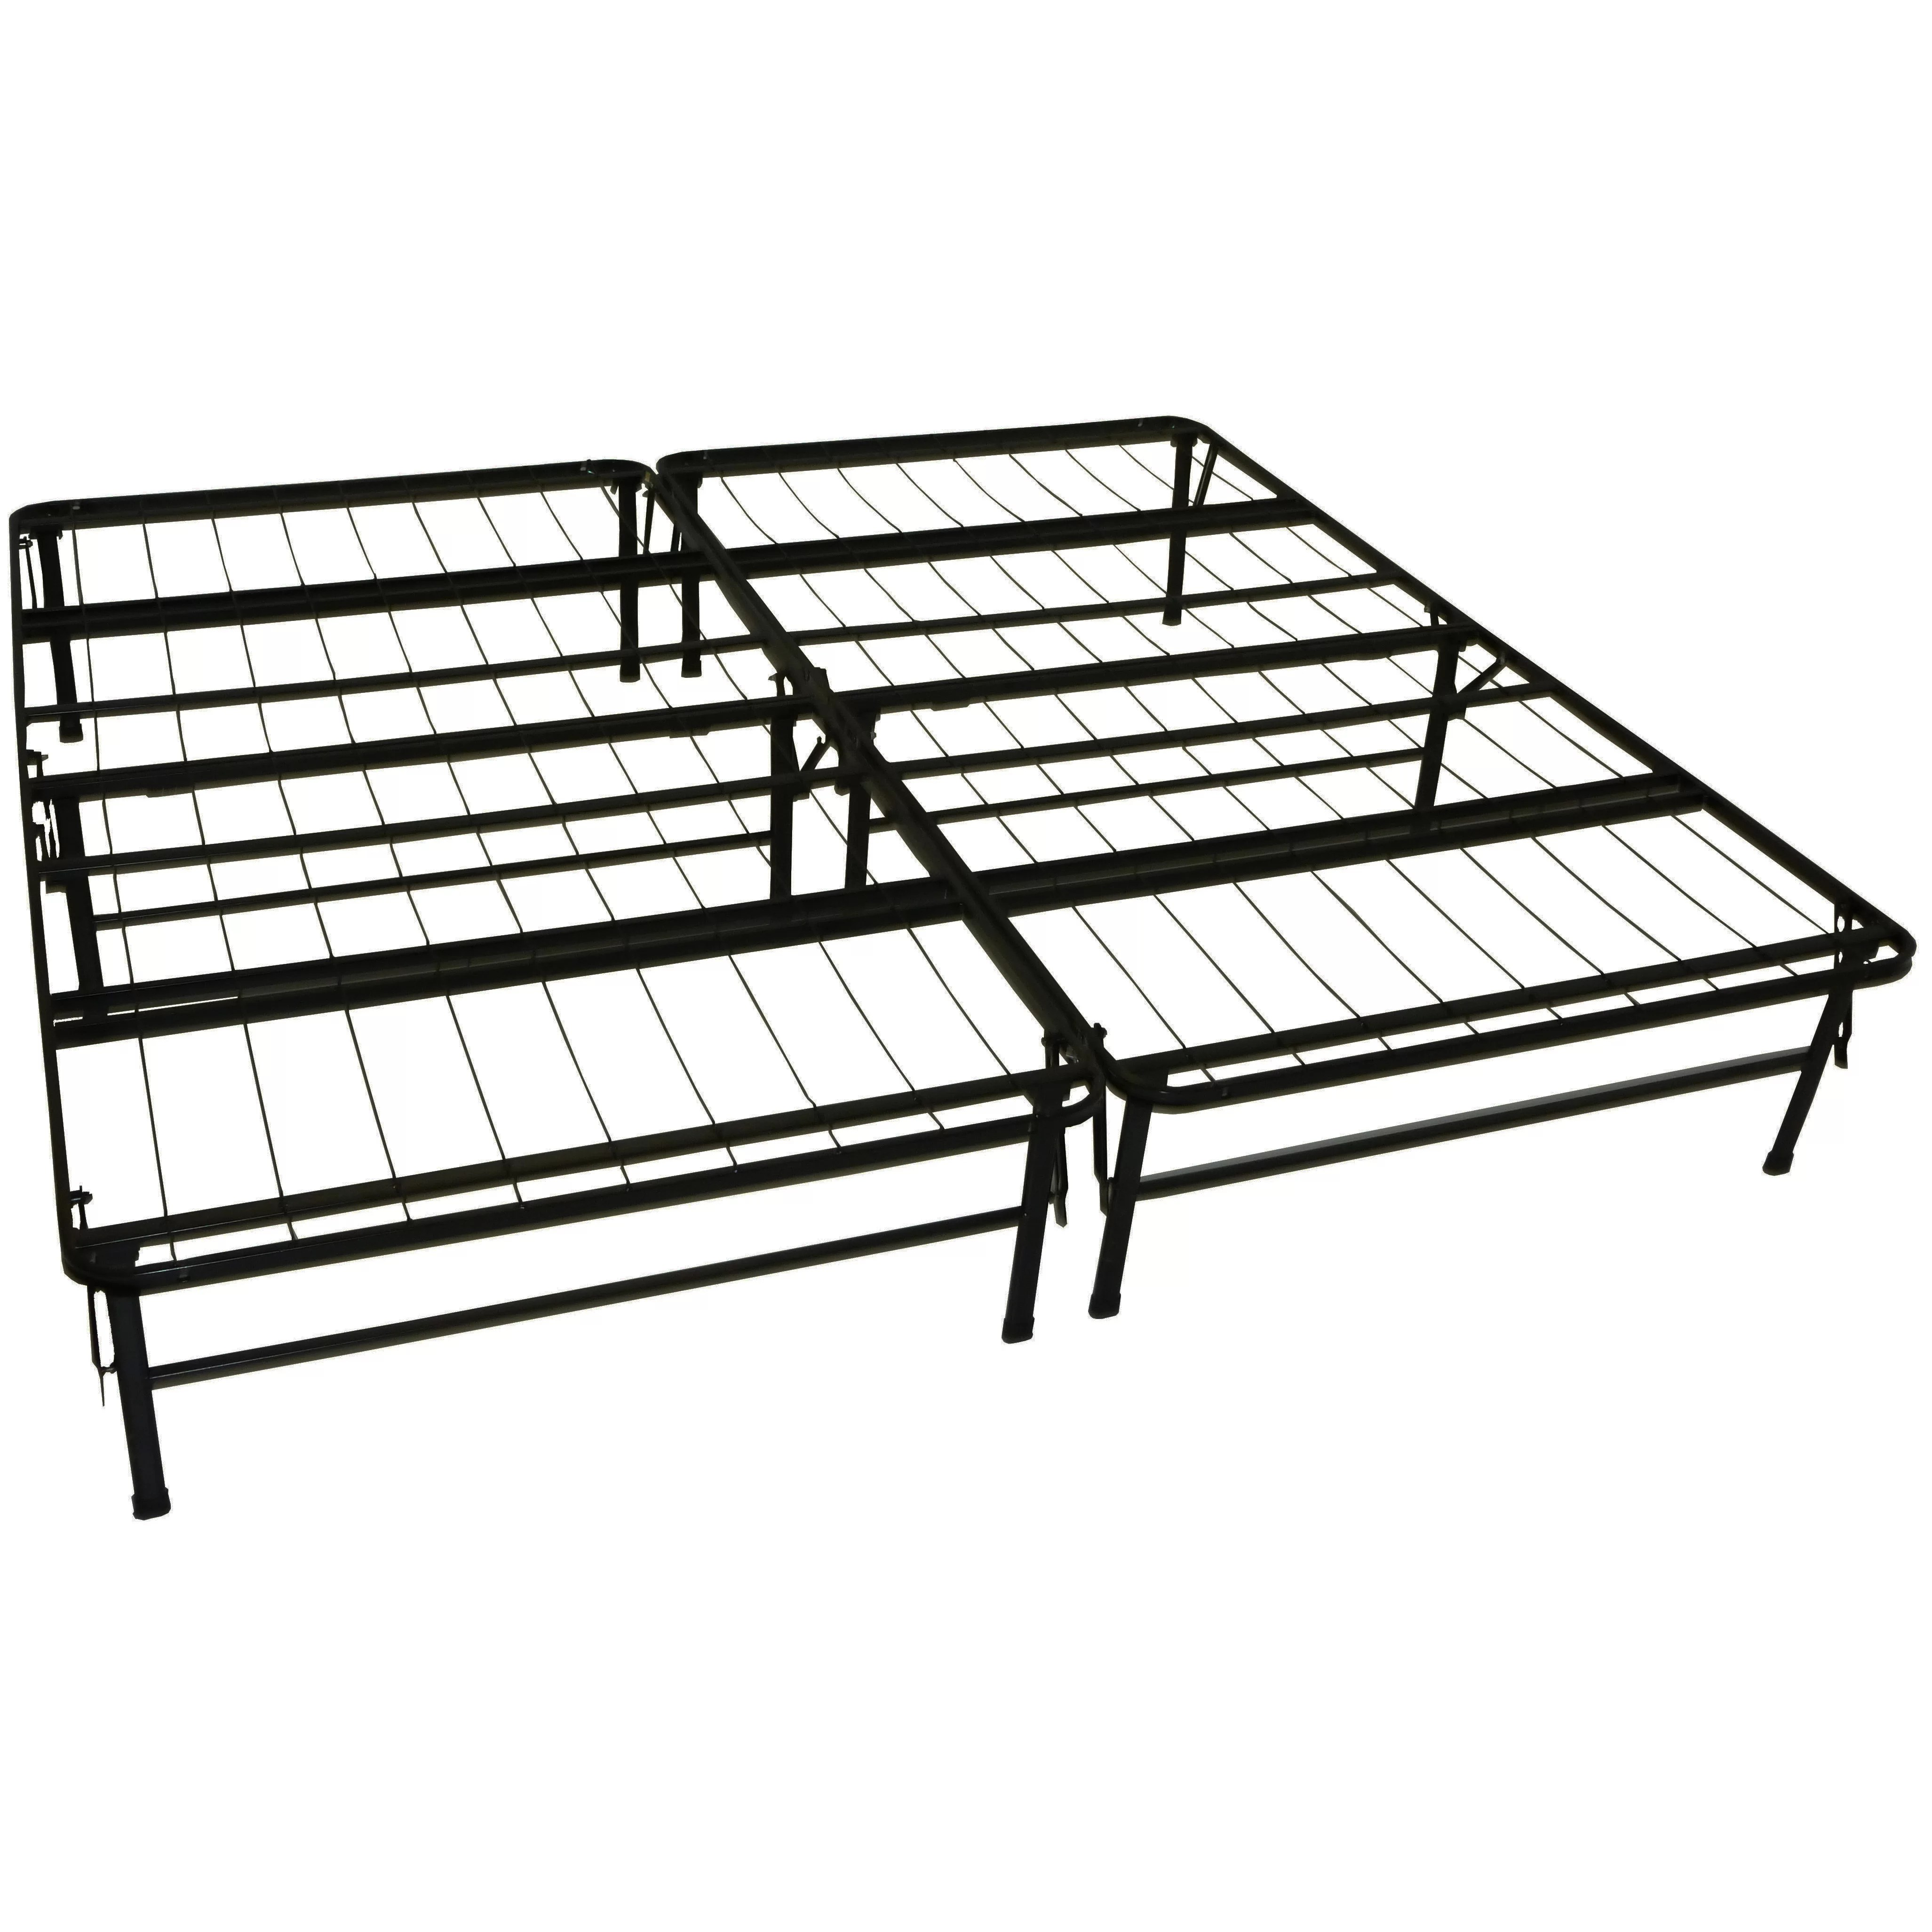 Epic Furnishings Llc Durabed Foundation And Frame In One Mattress Support System Platform Bed